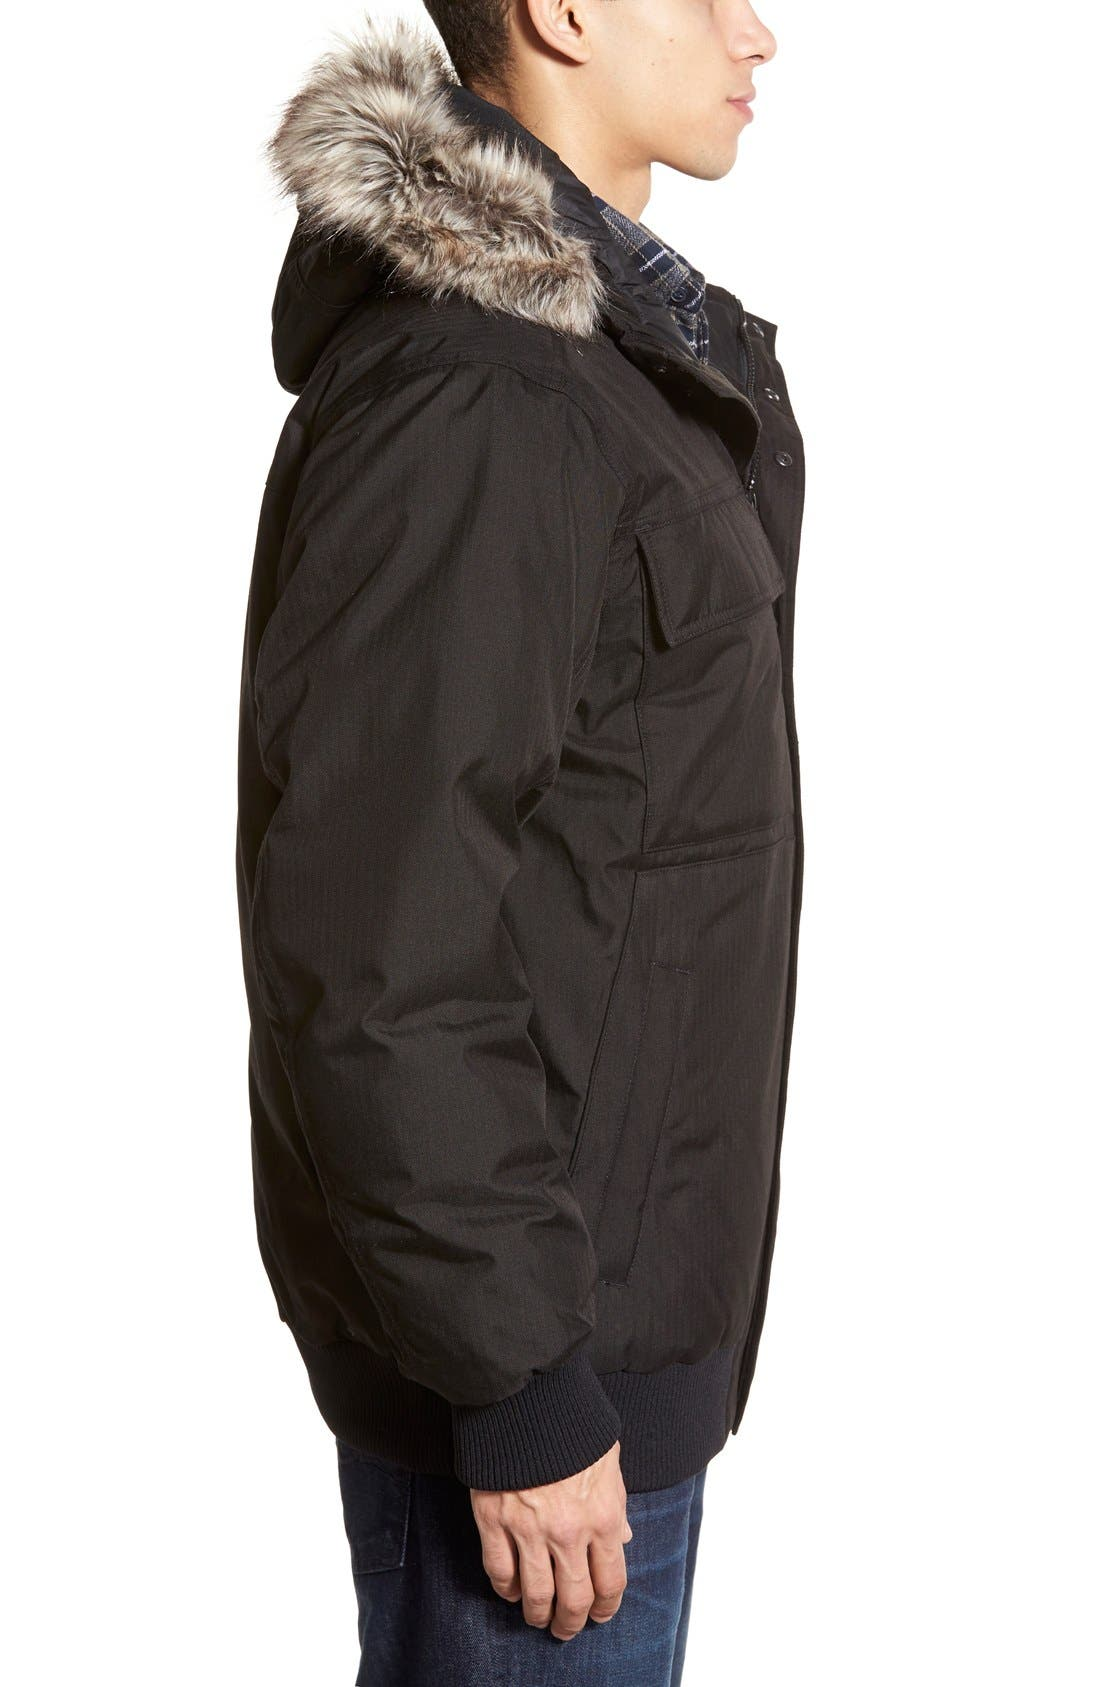 'Gotham II' Hooded Goose Down Jacket with Faux Fur Trim,                             Alternate thumbnail 4, color,                             001